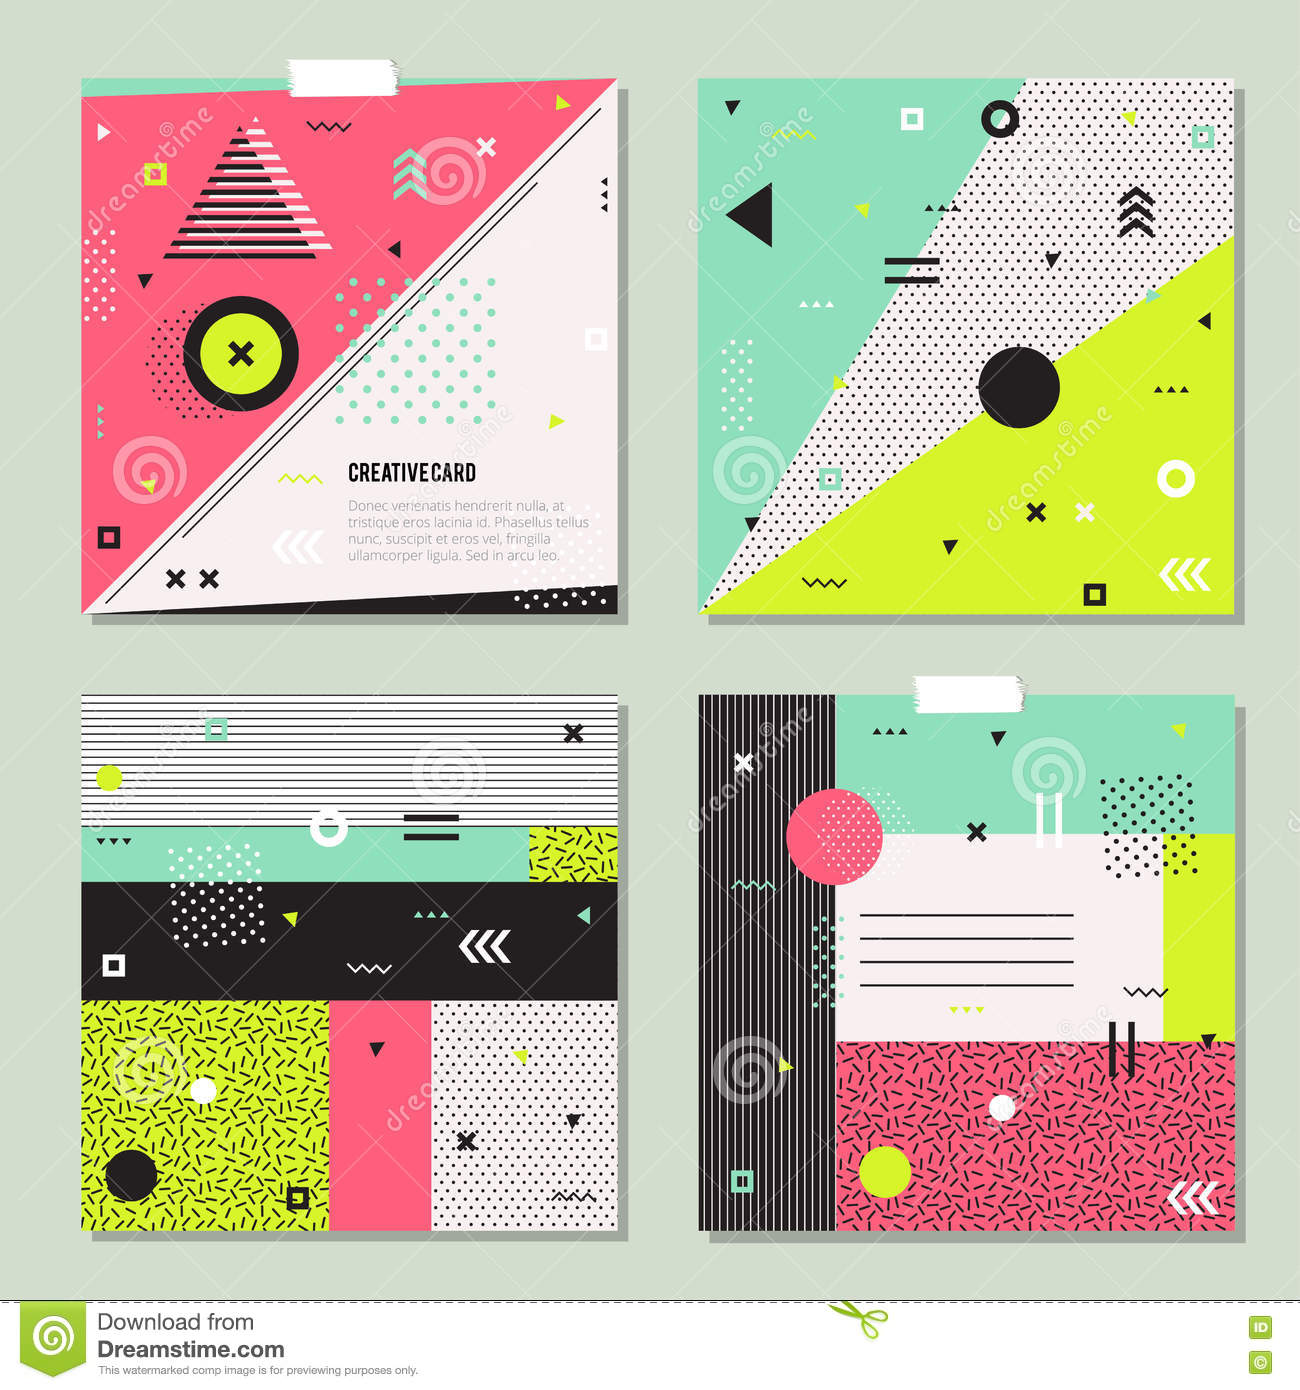 Elements of a poster design - Abstract Card Design Elements